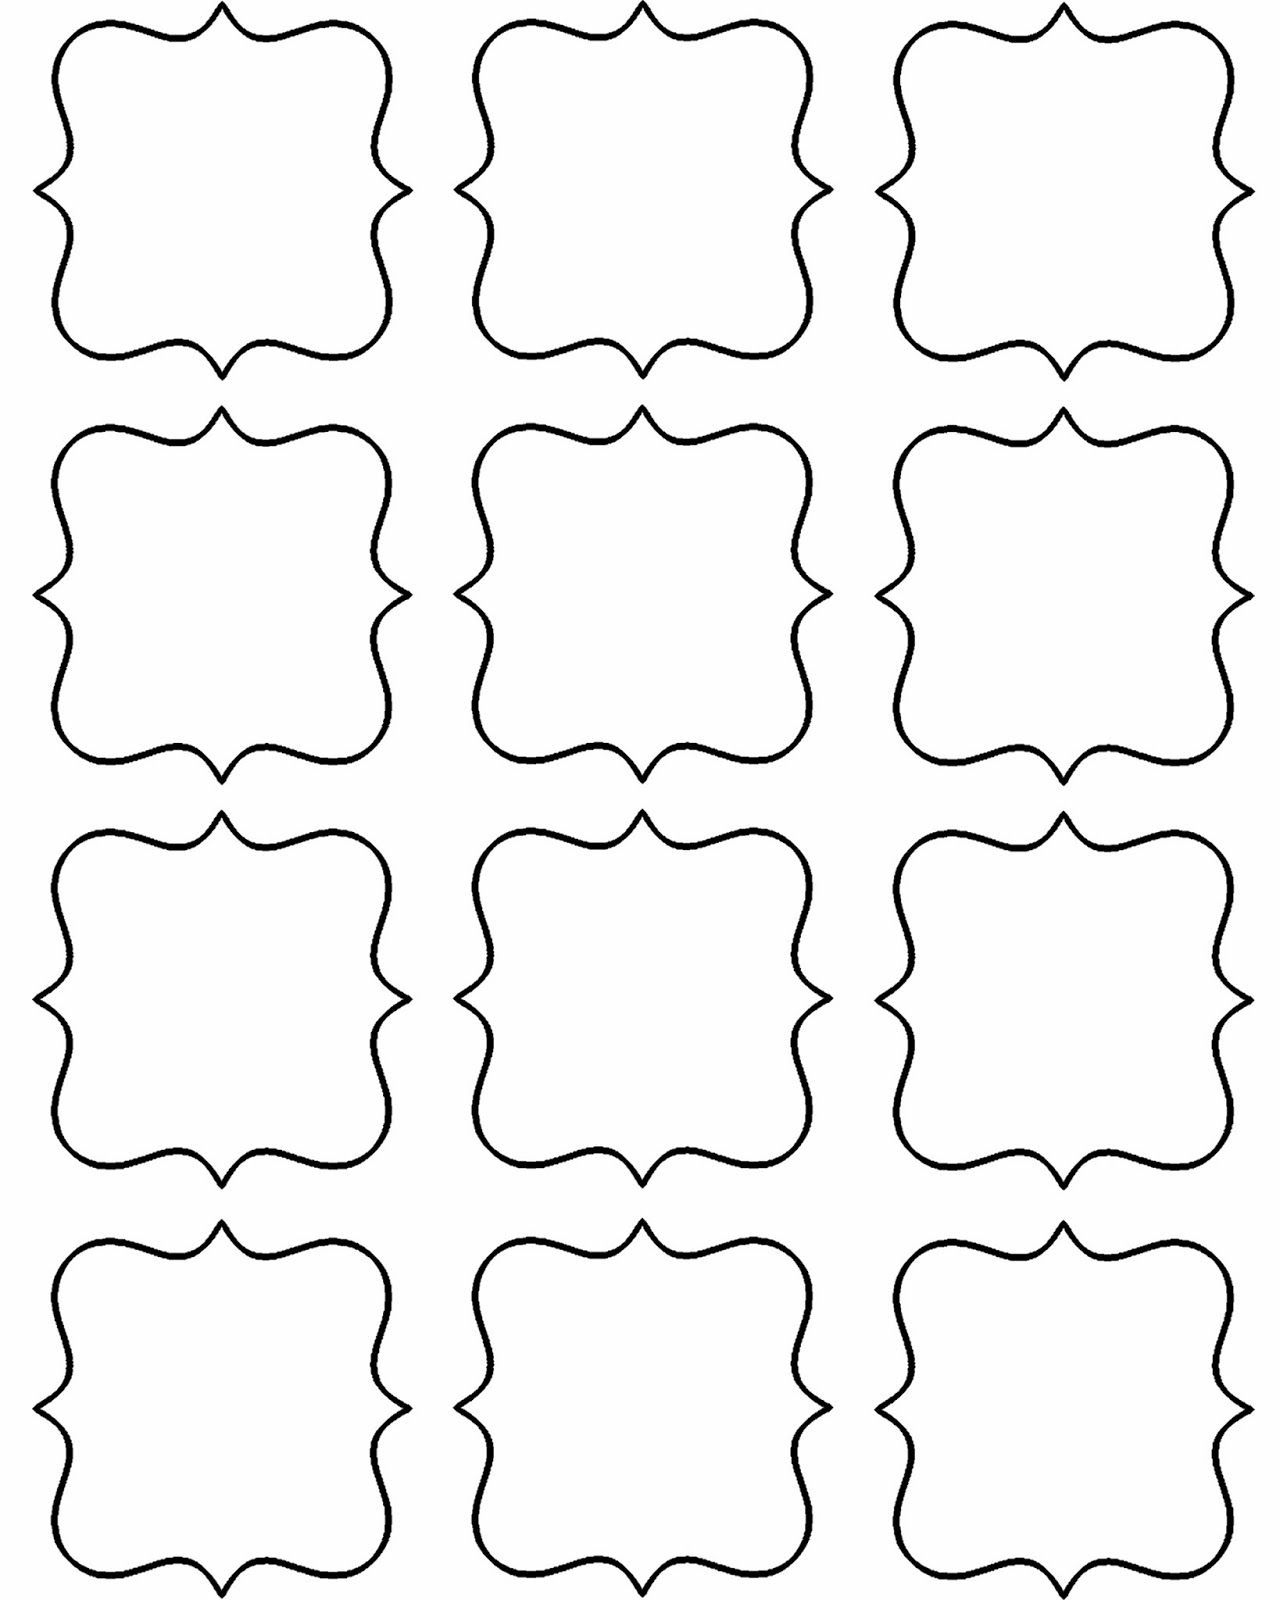 Free Printable Gift Tag Templates For Word – Prntbl - Free Printable Gift Tag Templates For Word